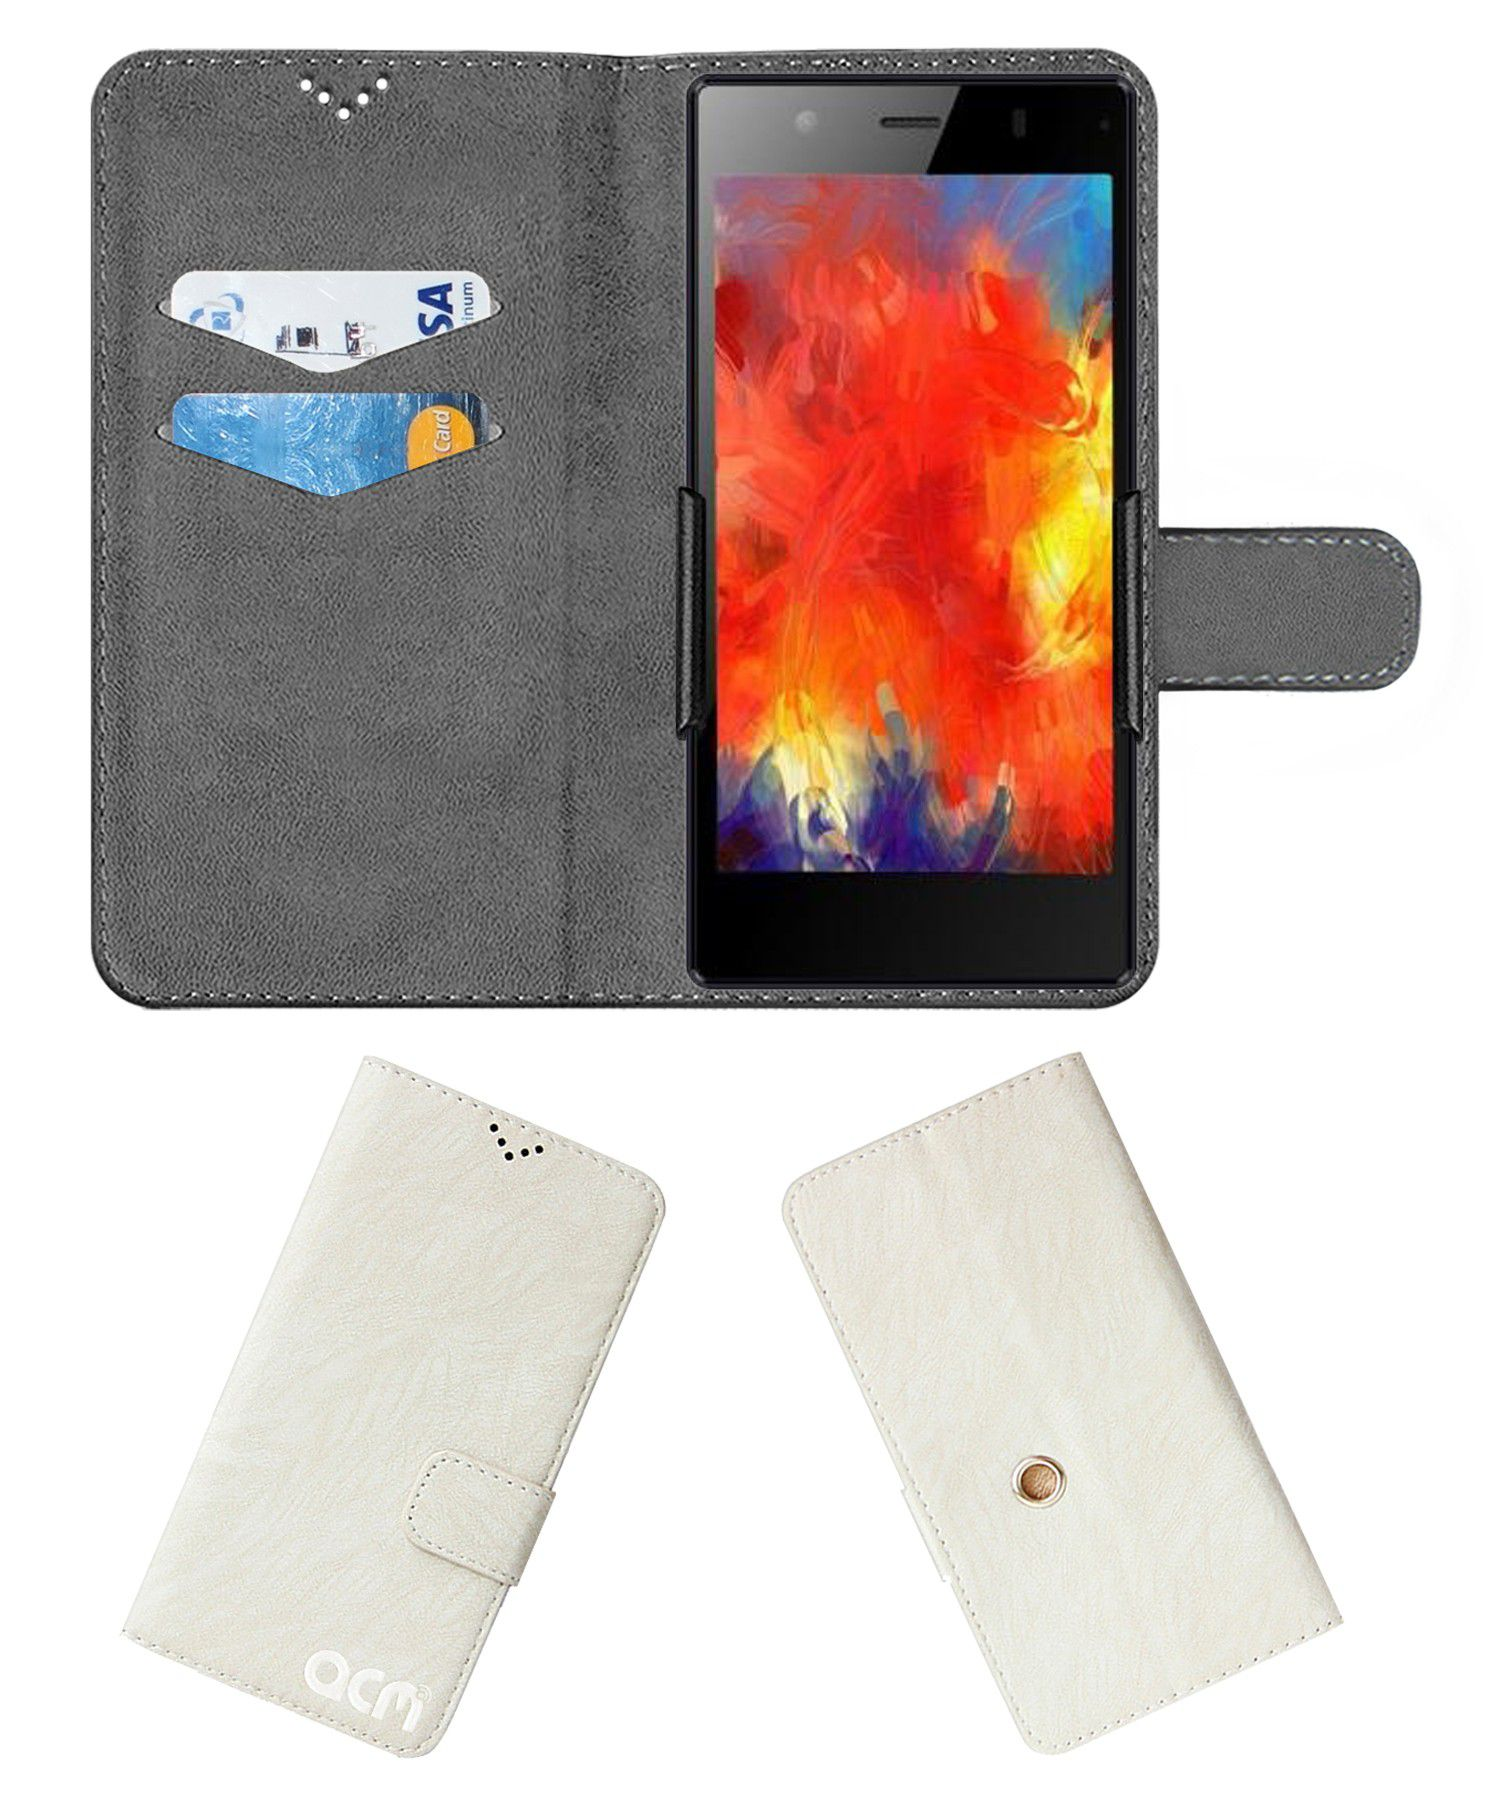 Videocon Infinium Graphite Flip Cover by ACM - White Clip holder to hold your mobile securely